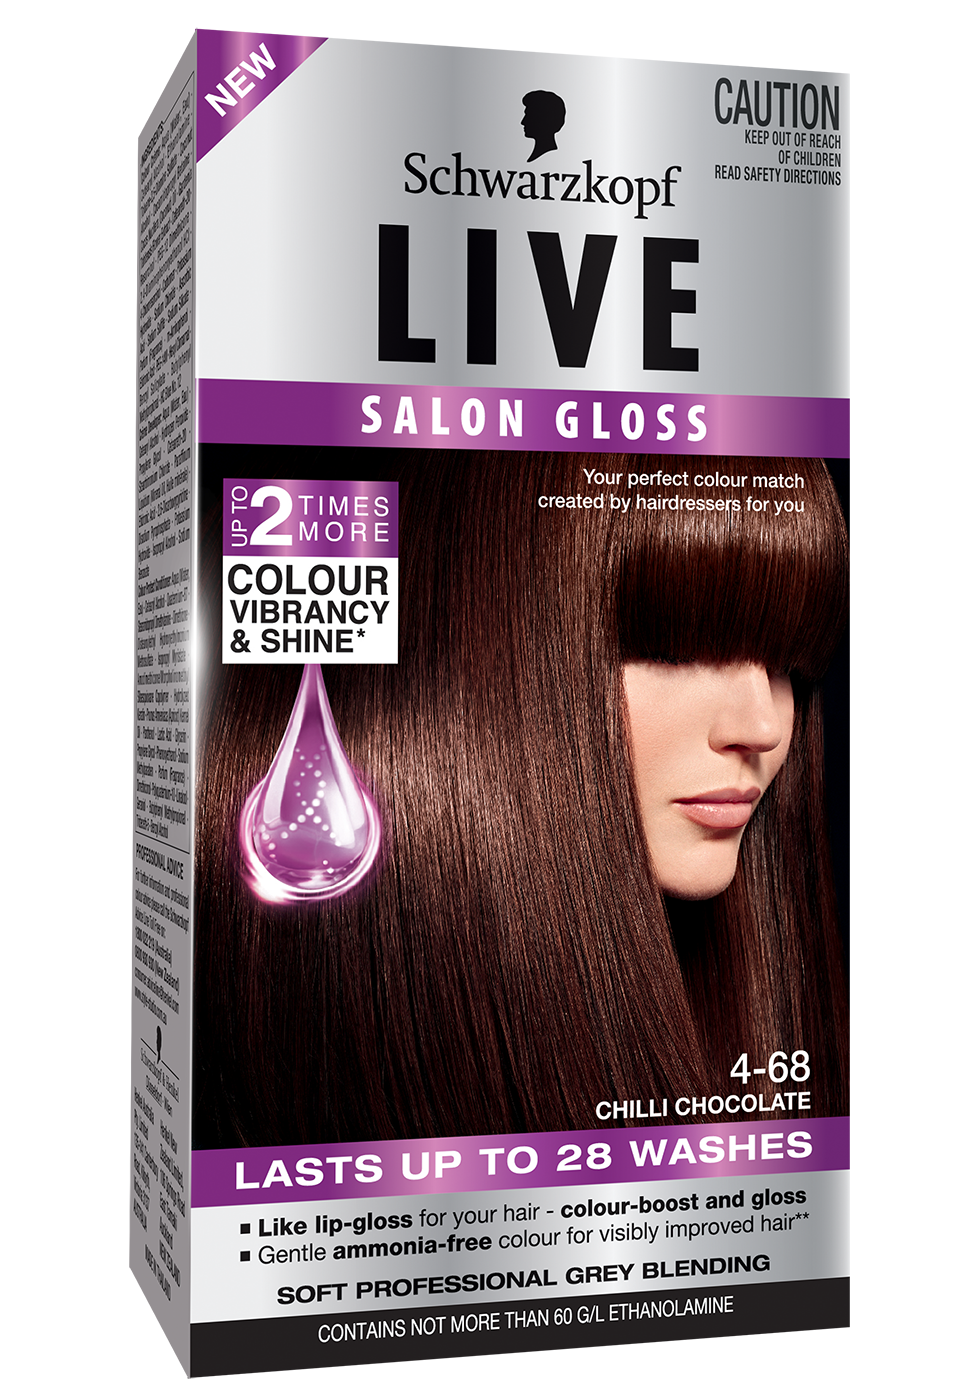 297LIVESalonGloss3DLF468ChilliChocolate